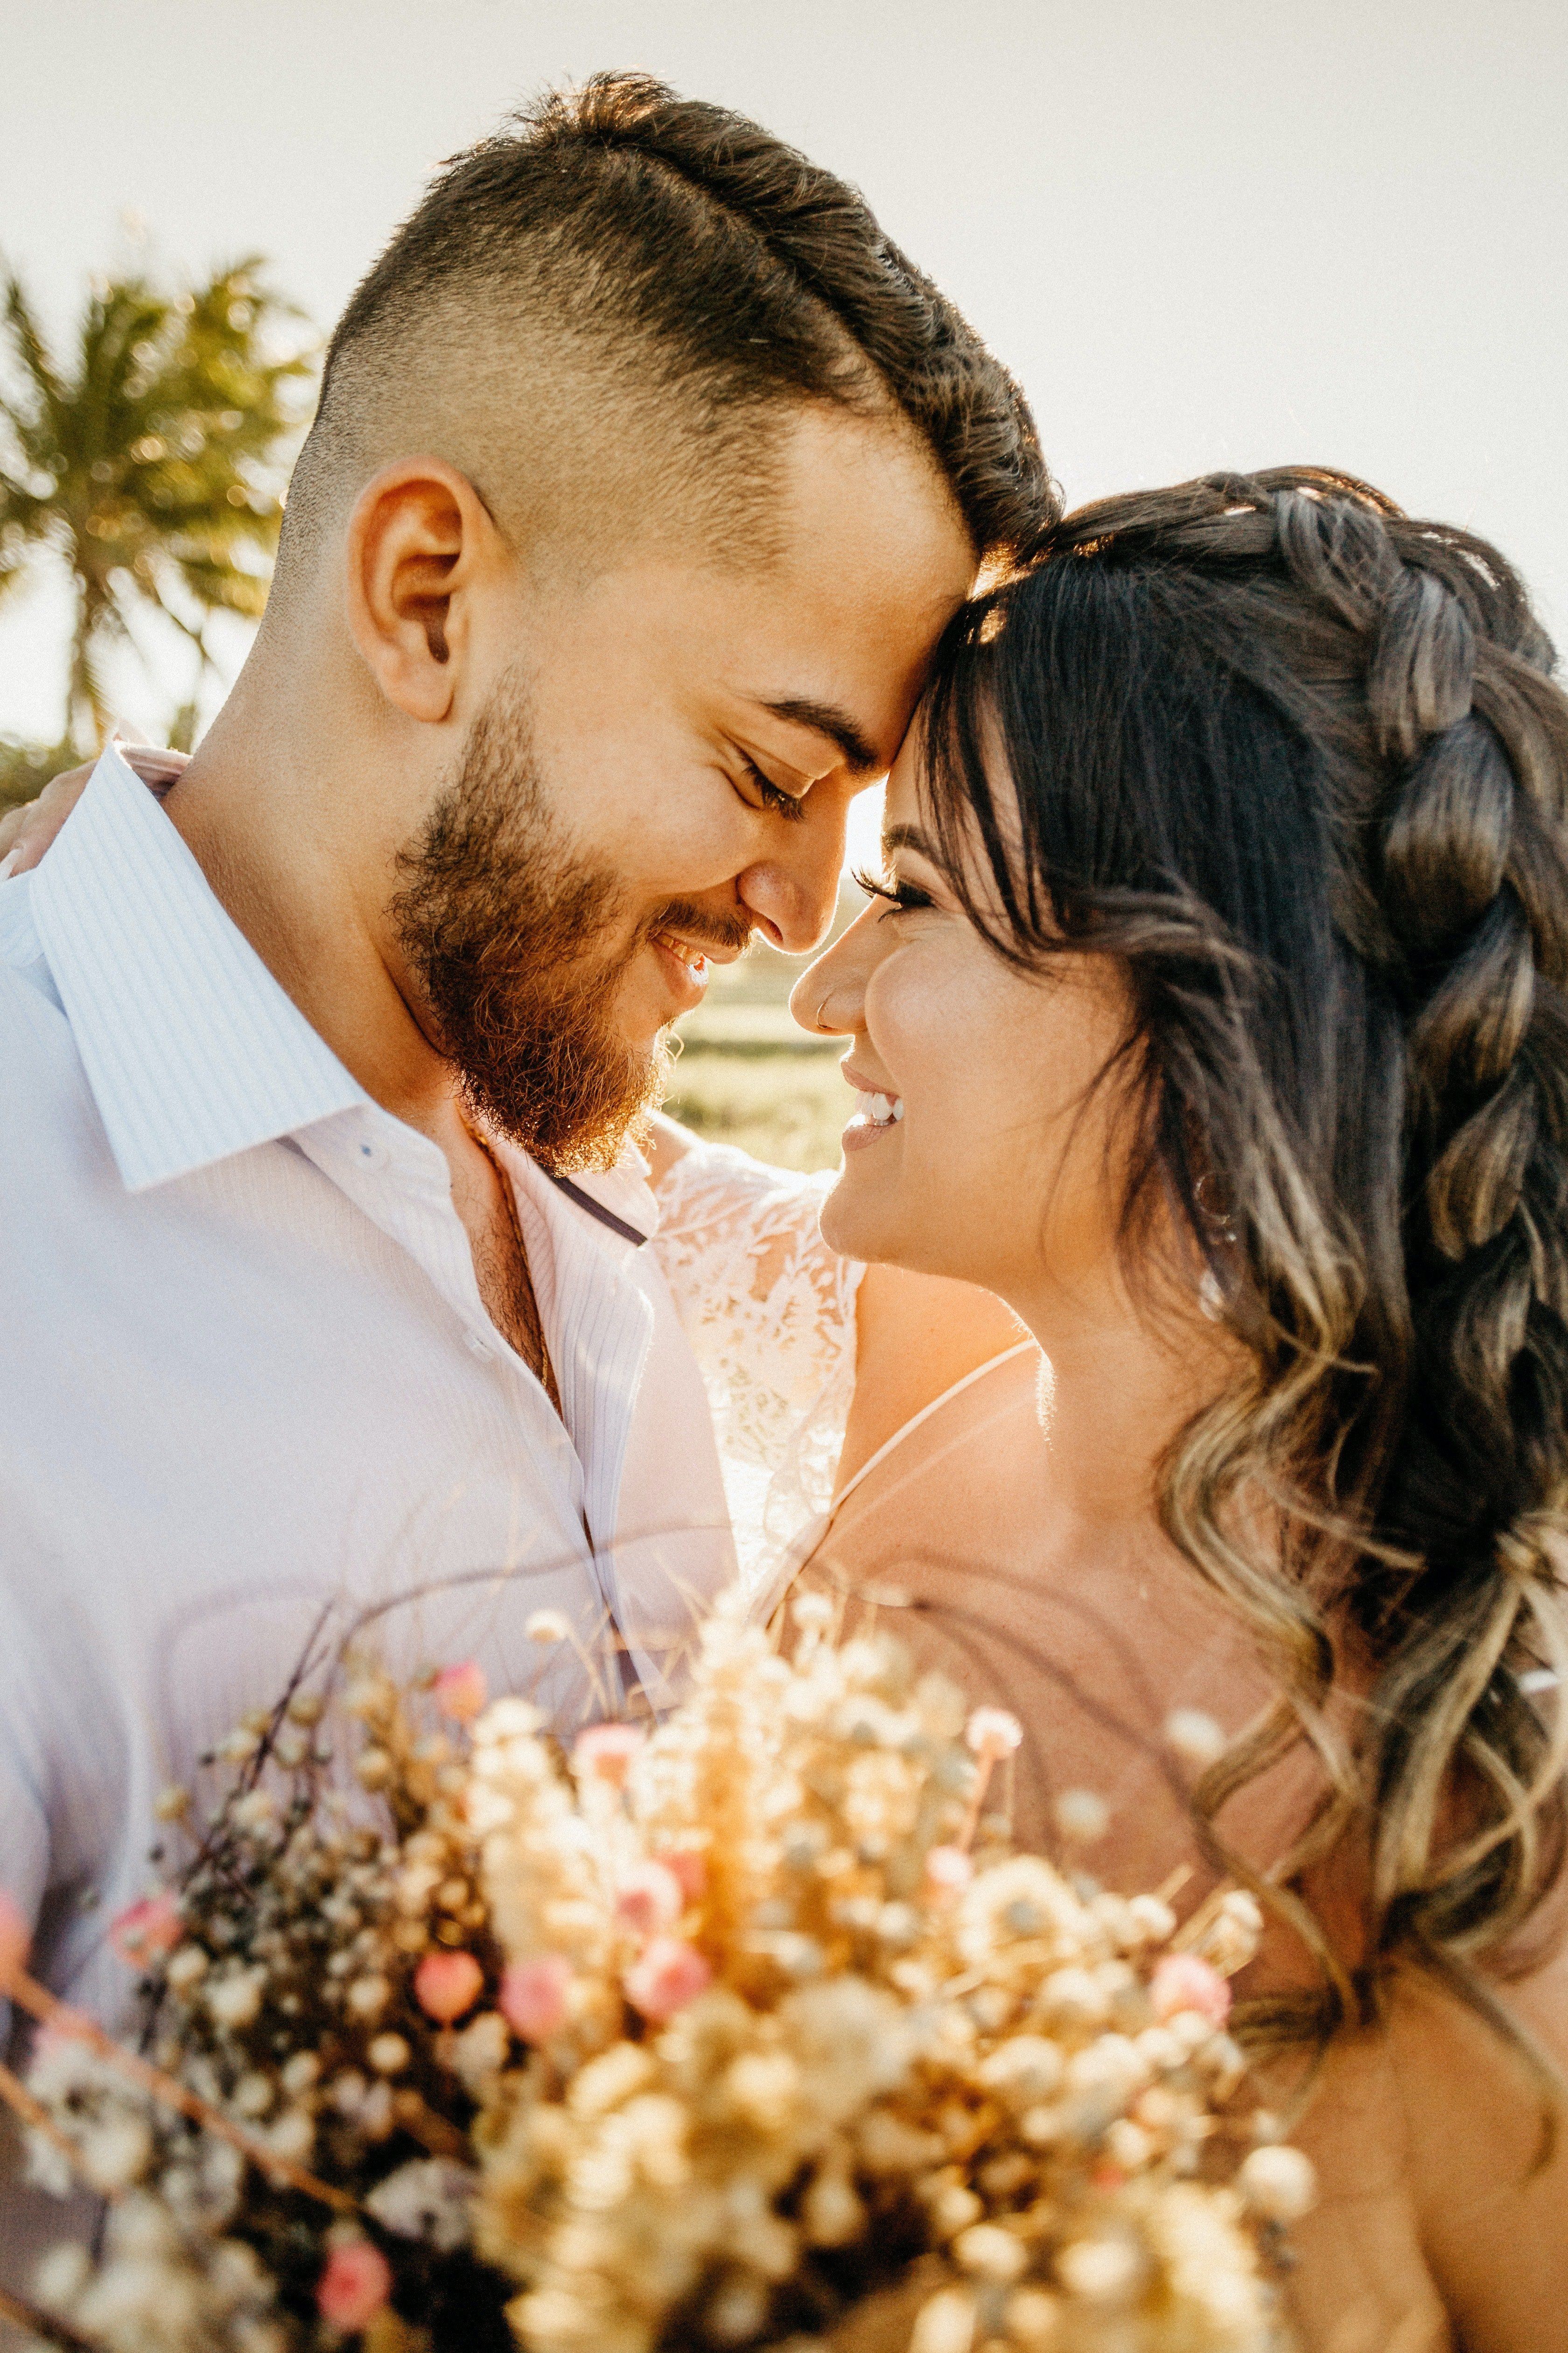 Pictured - A newly wedded couple glaring into each other's eyes while smiling and embracing each other on the beach on their wedding day. | Source: Pexels